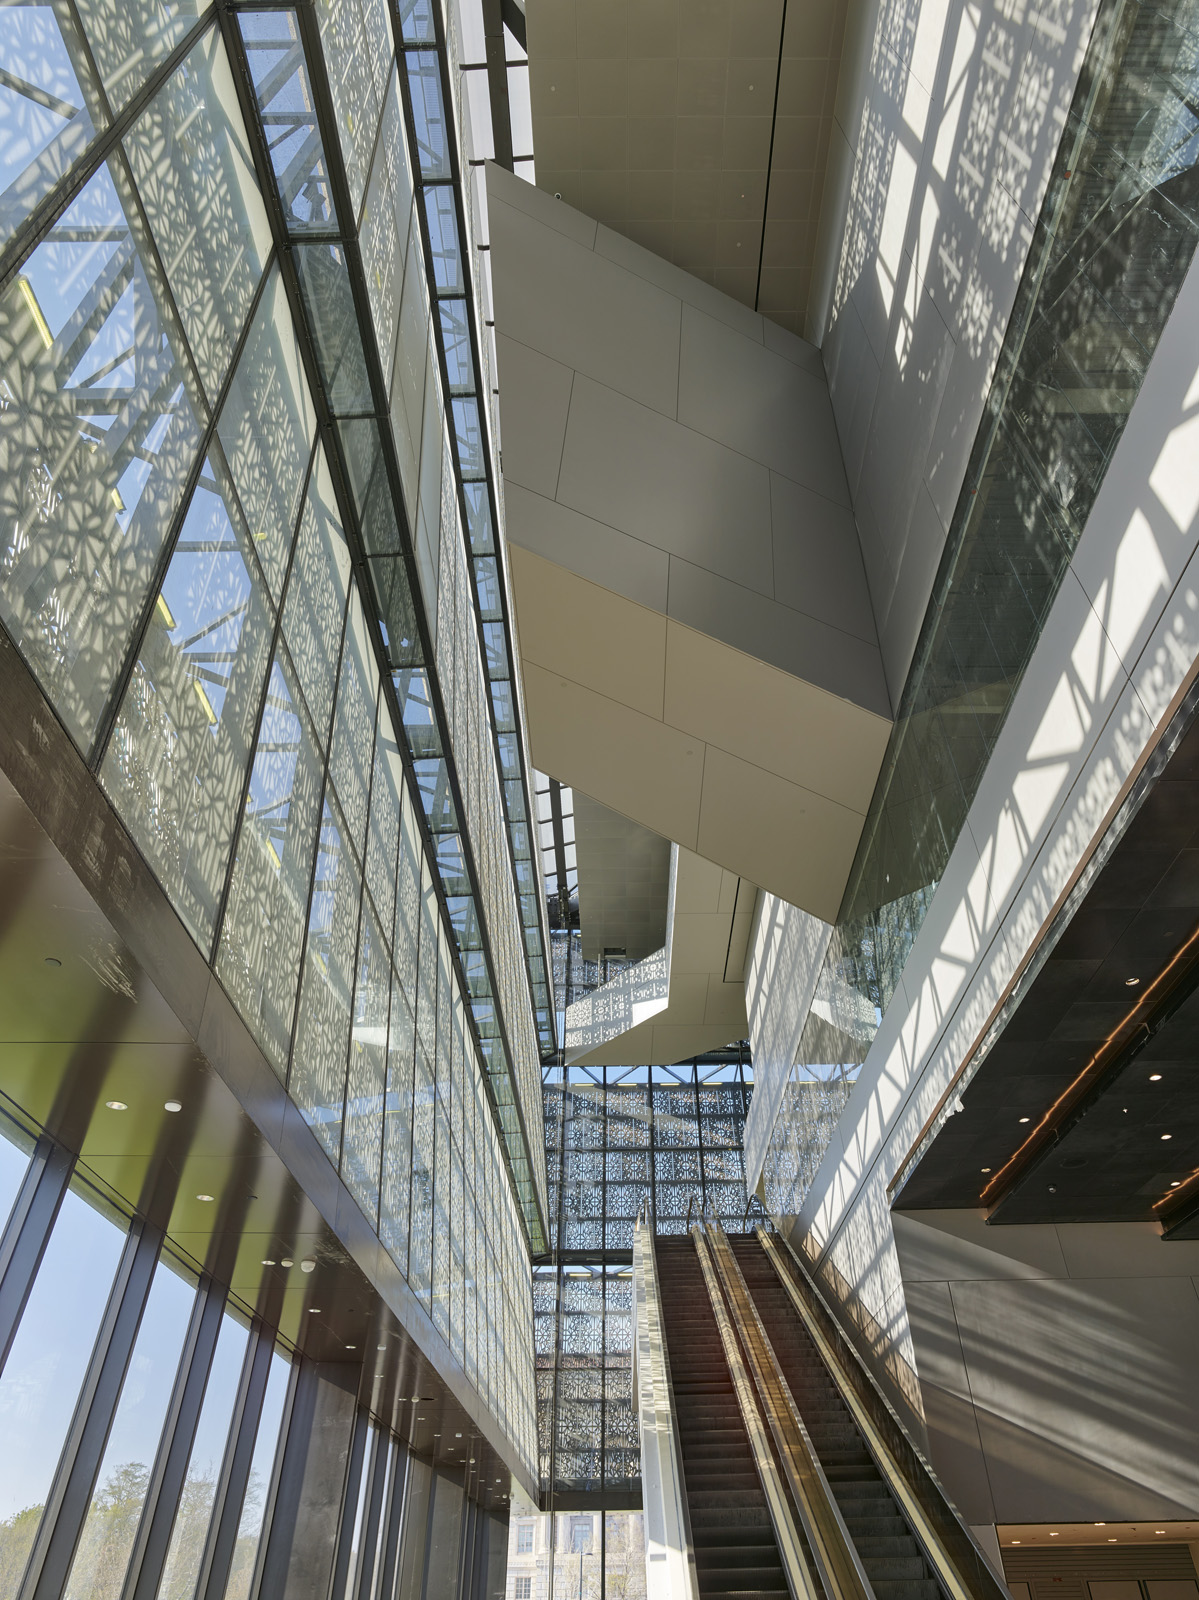 African american history museum - Glass reimagined - IGS Magazine - 3